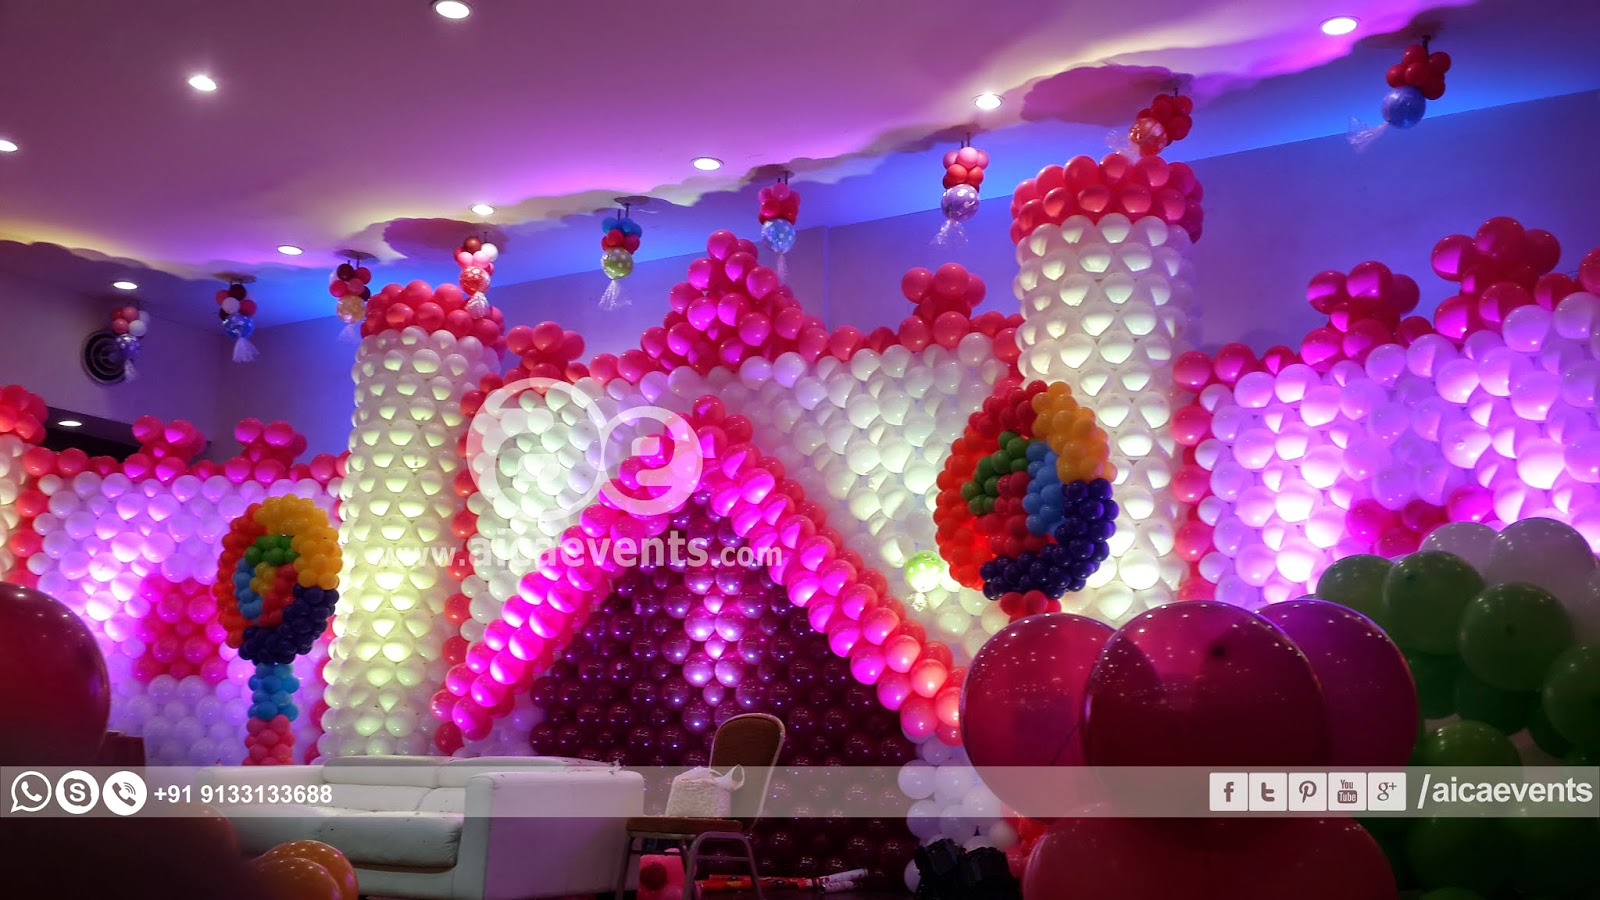 Aicaevents castle with balloon wall decoration for Balloon decoration for stage